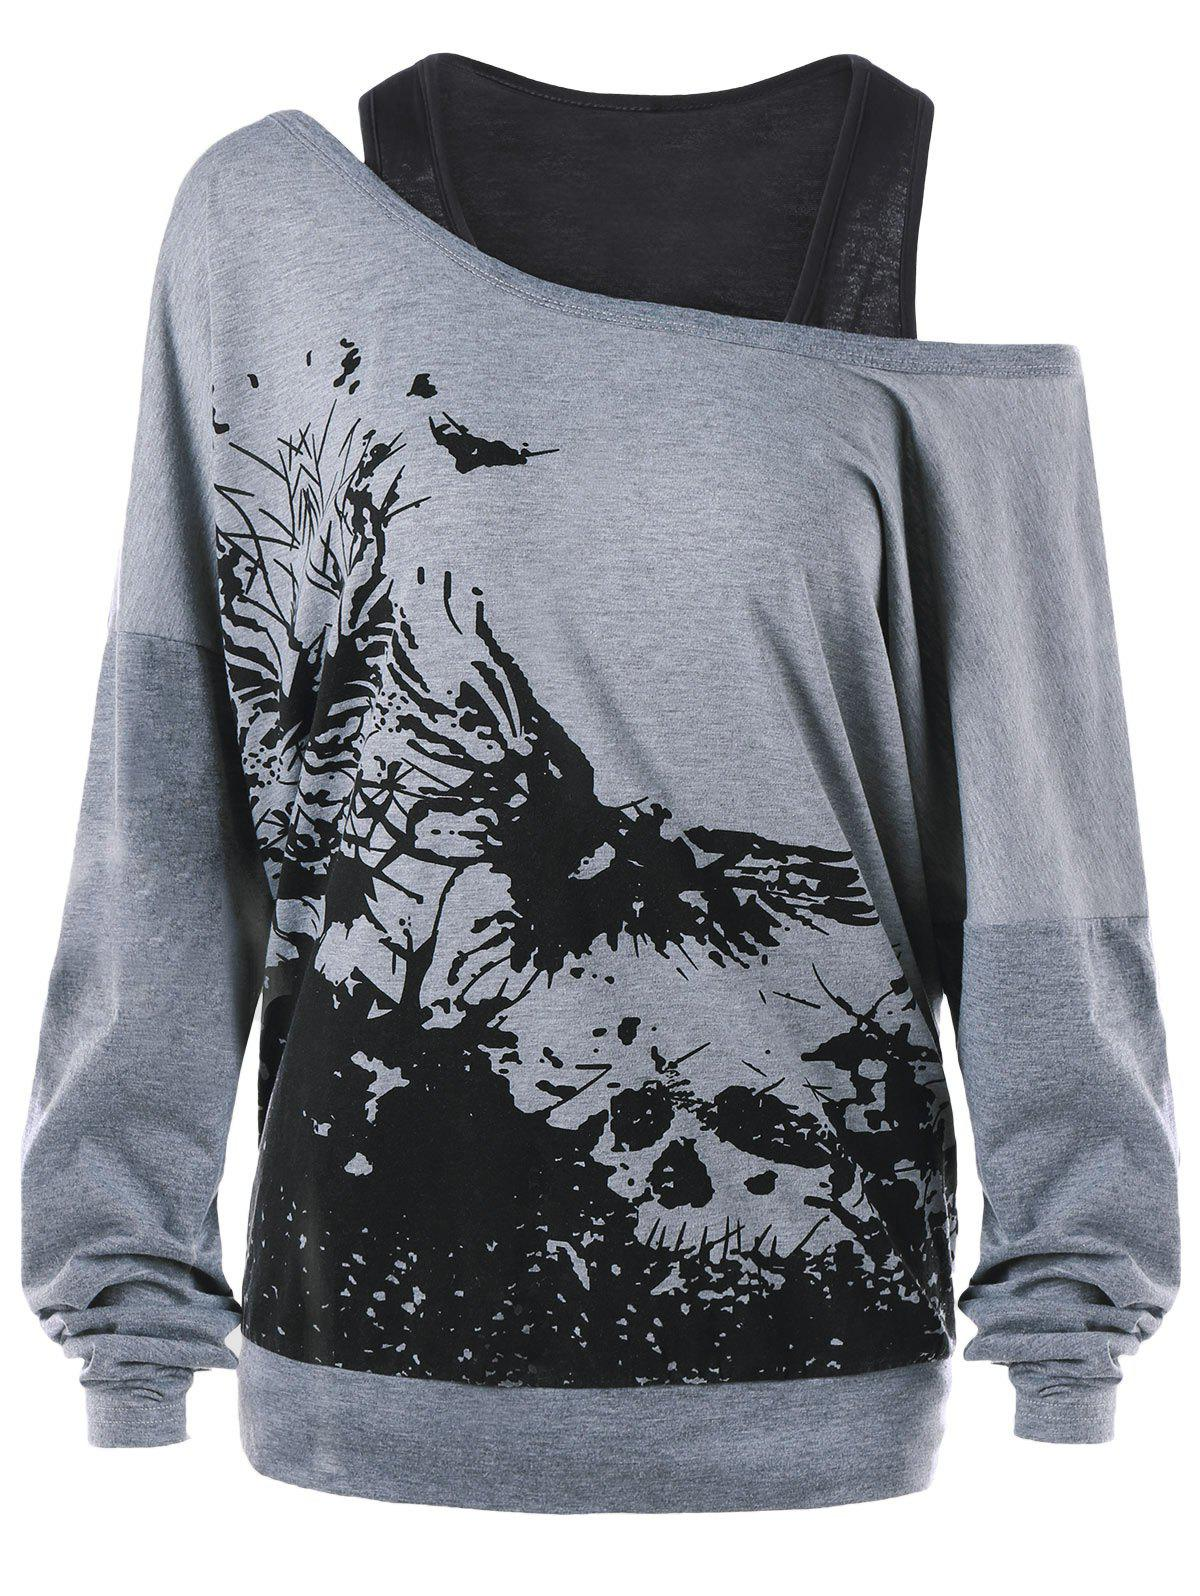 Ink Painting Print Plus Size Sweatshirt with Tank Top plus size bikini set with print tank top